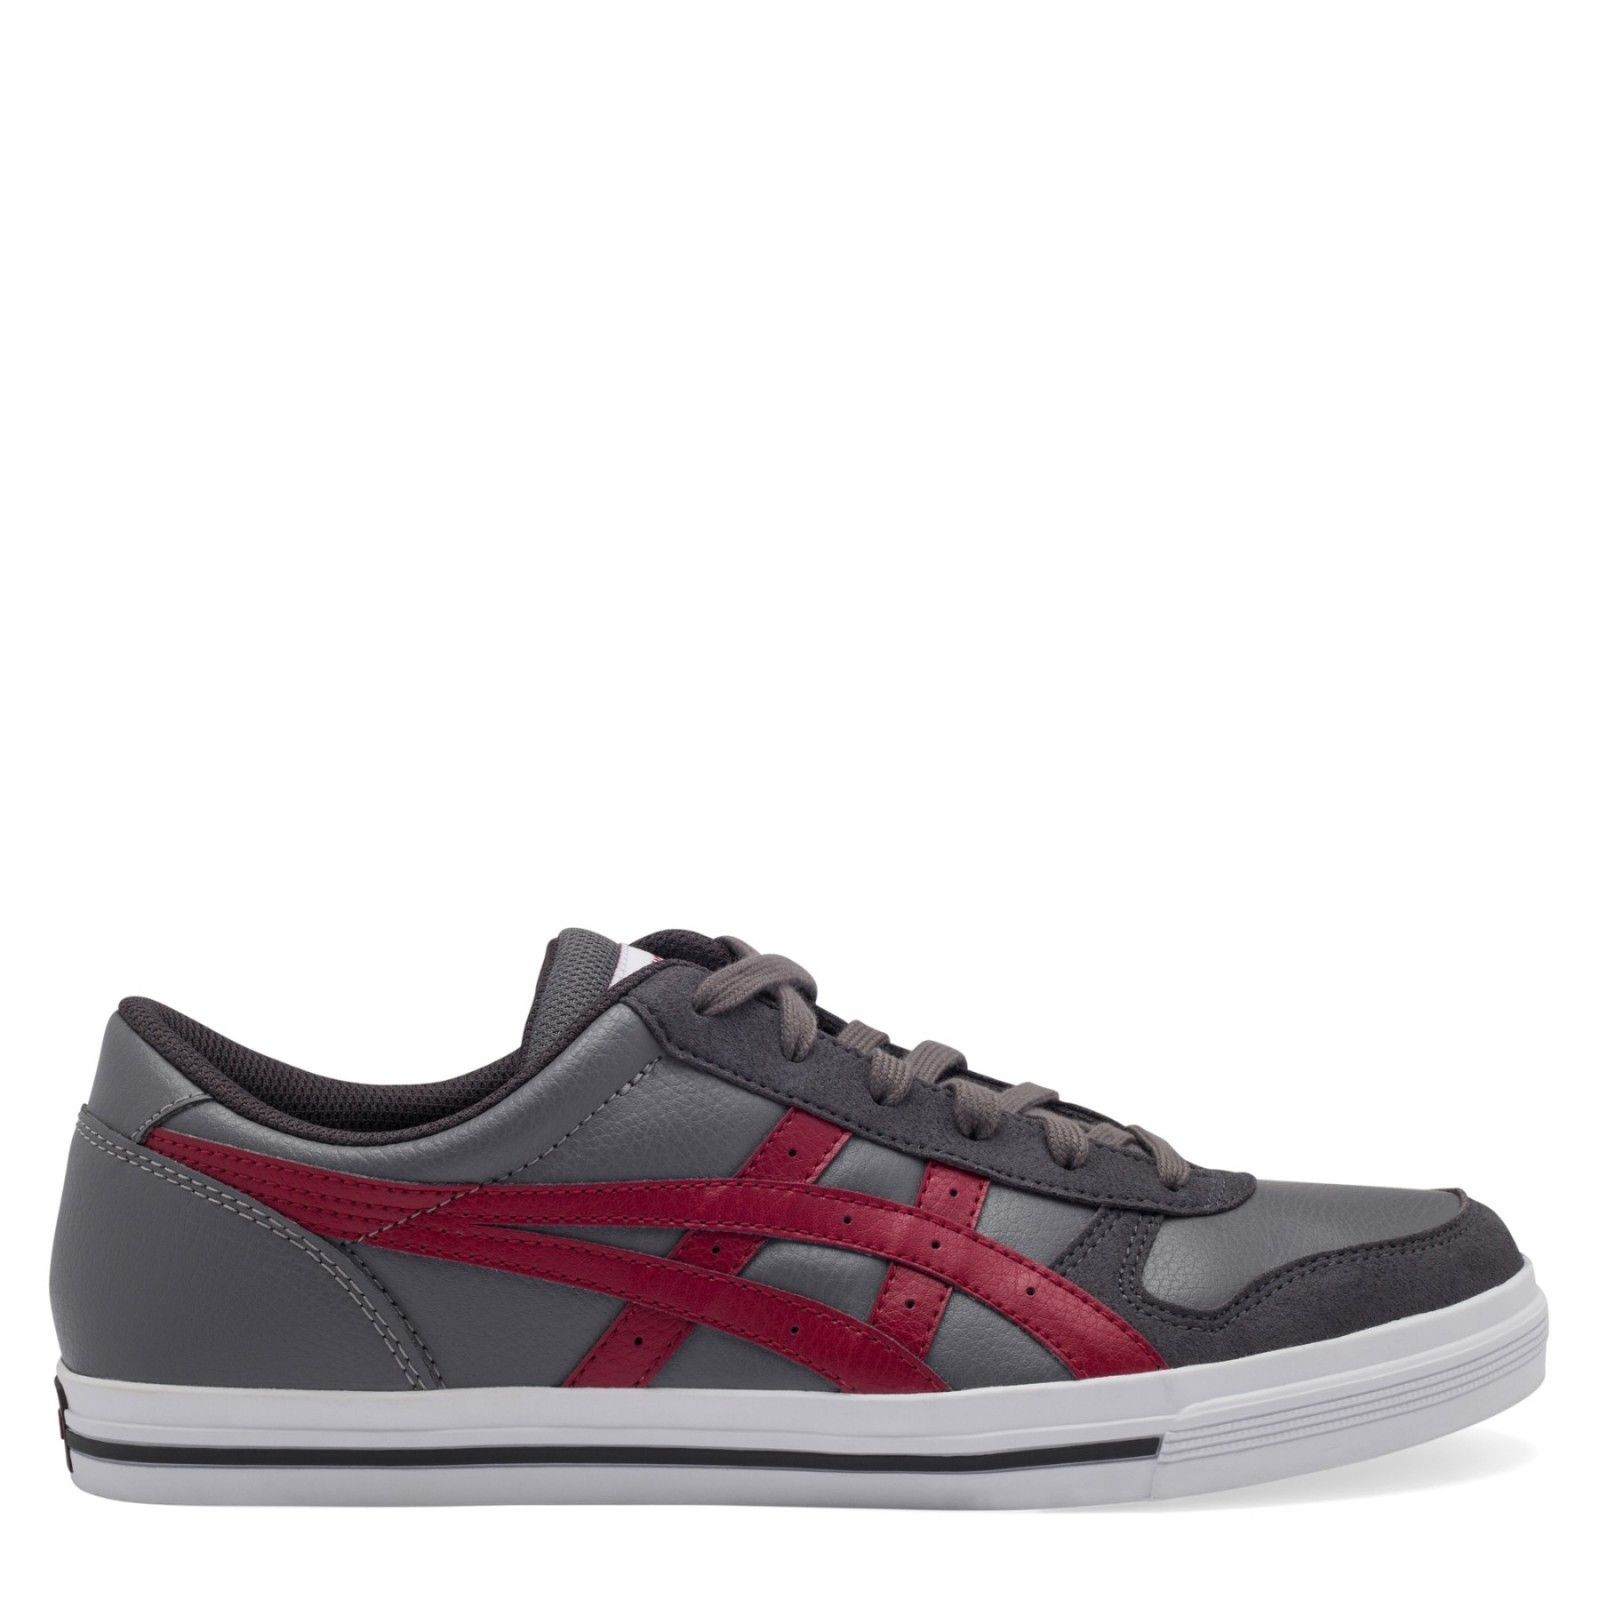 SCARPE SNEAKERS CASUAL UOMO ASICS ORIGINAL AARON HY526 1125 PELLE SHOES A/I NEW